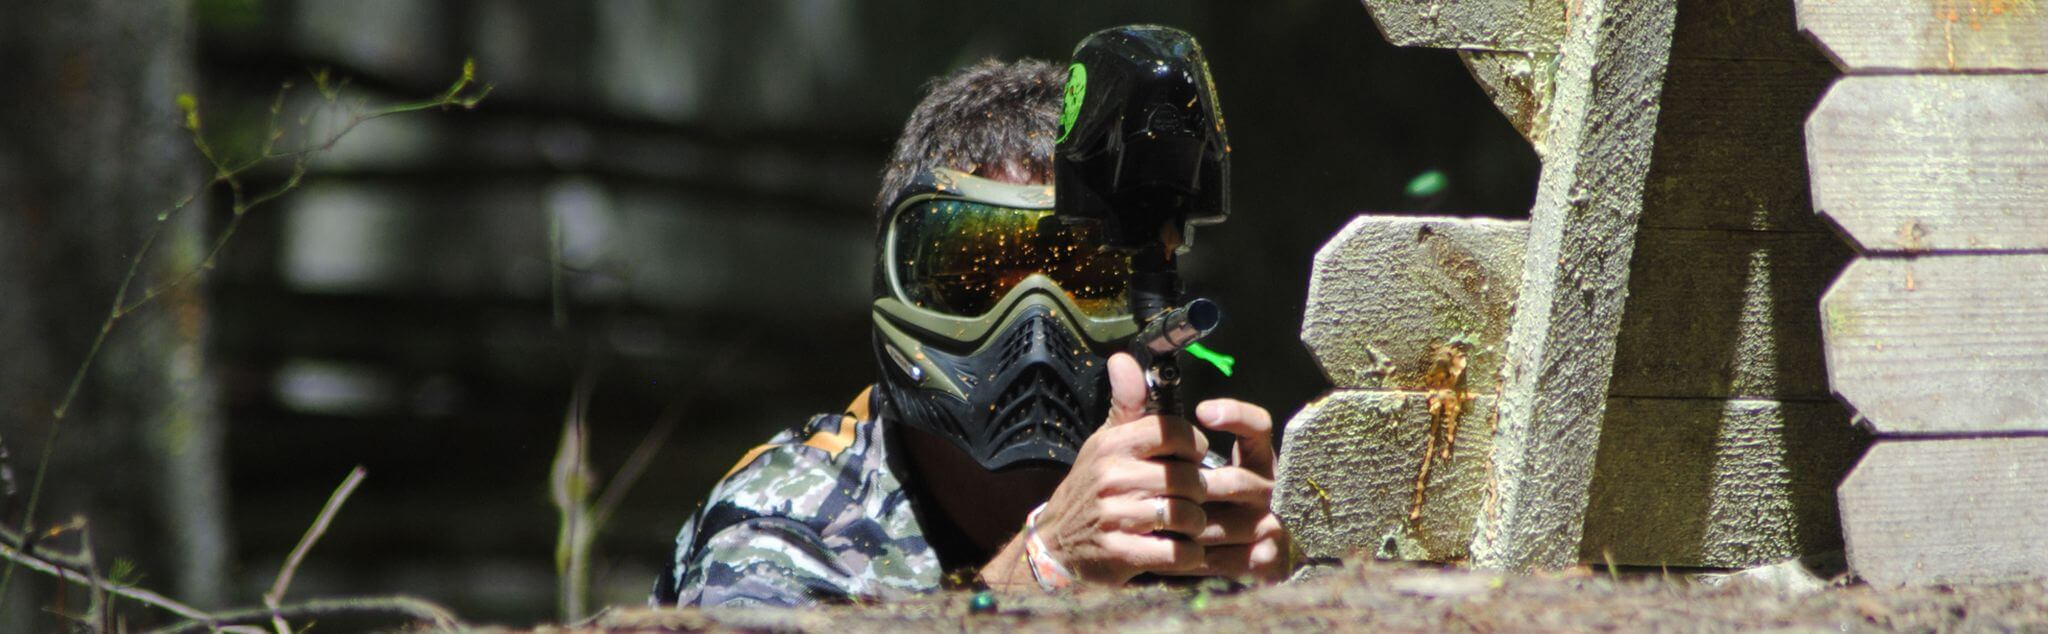 Paintball en Sobron